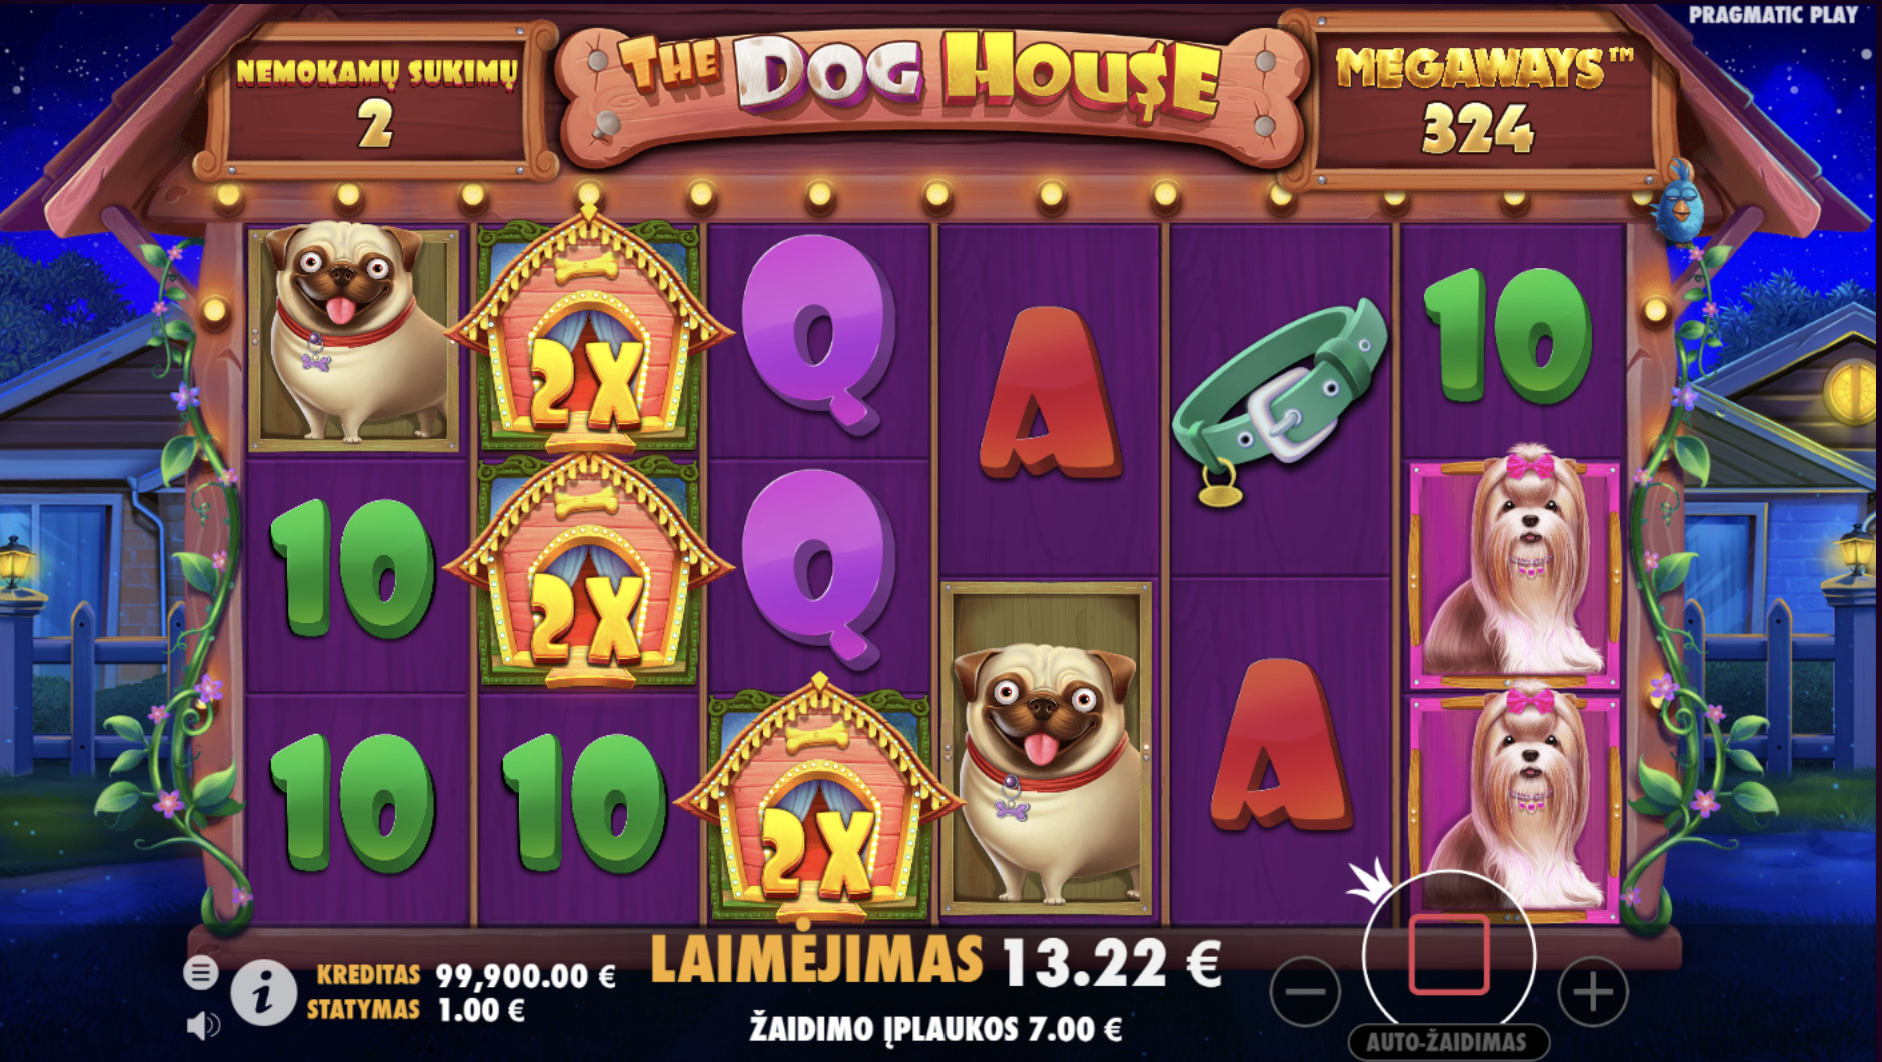 the dog house megaways sticky wilds free spins